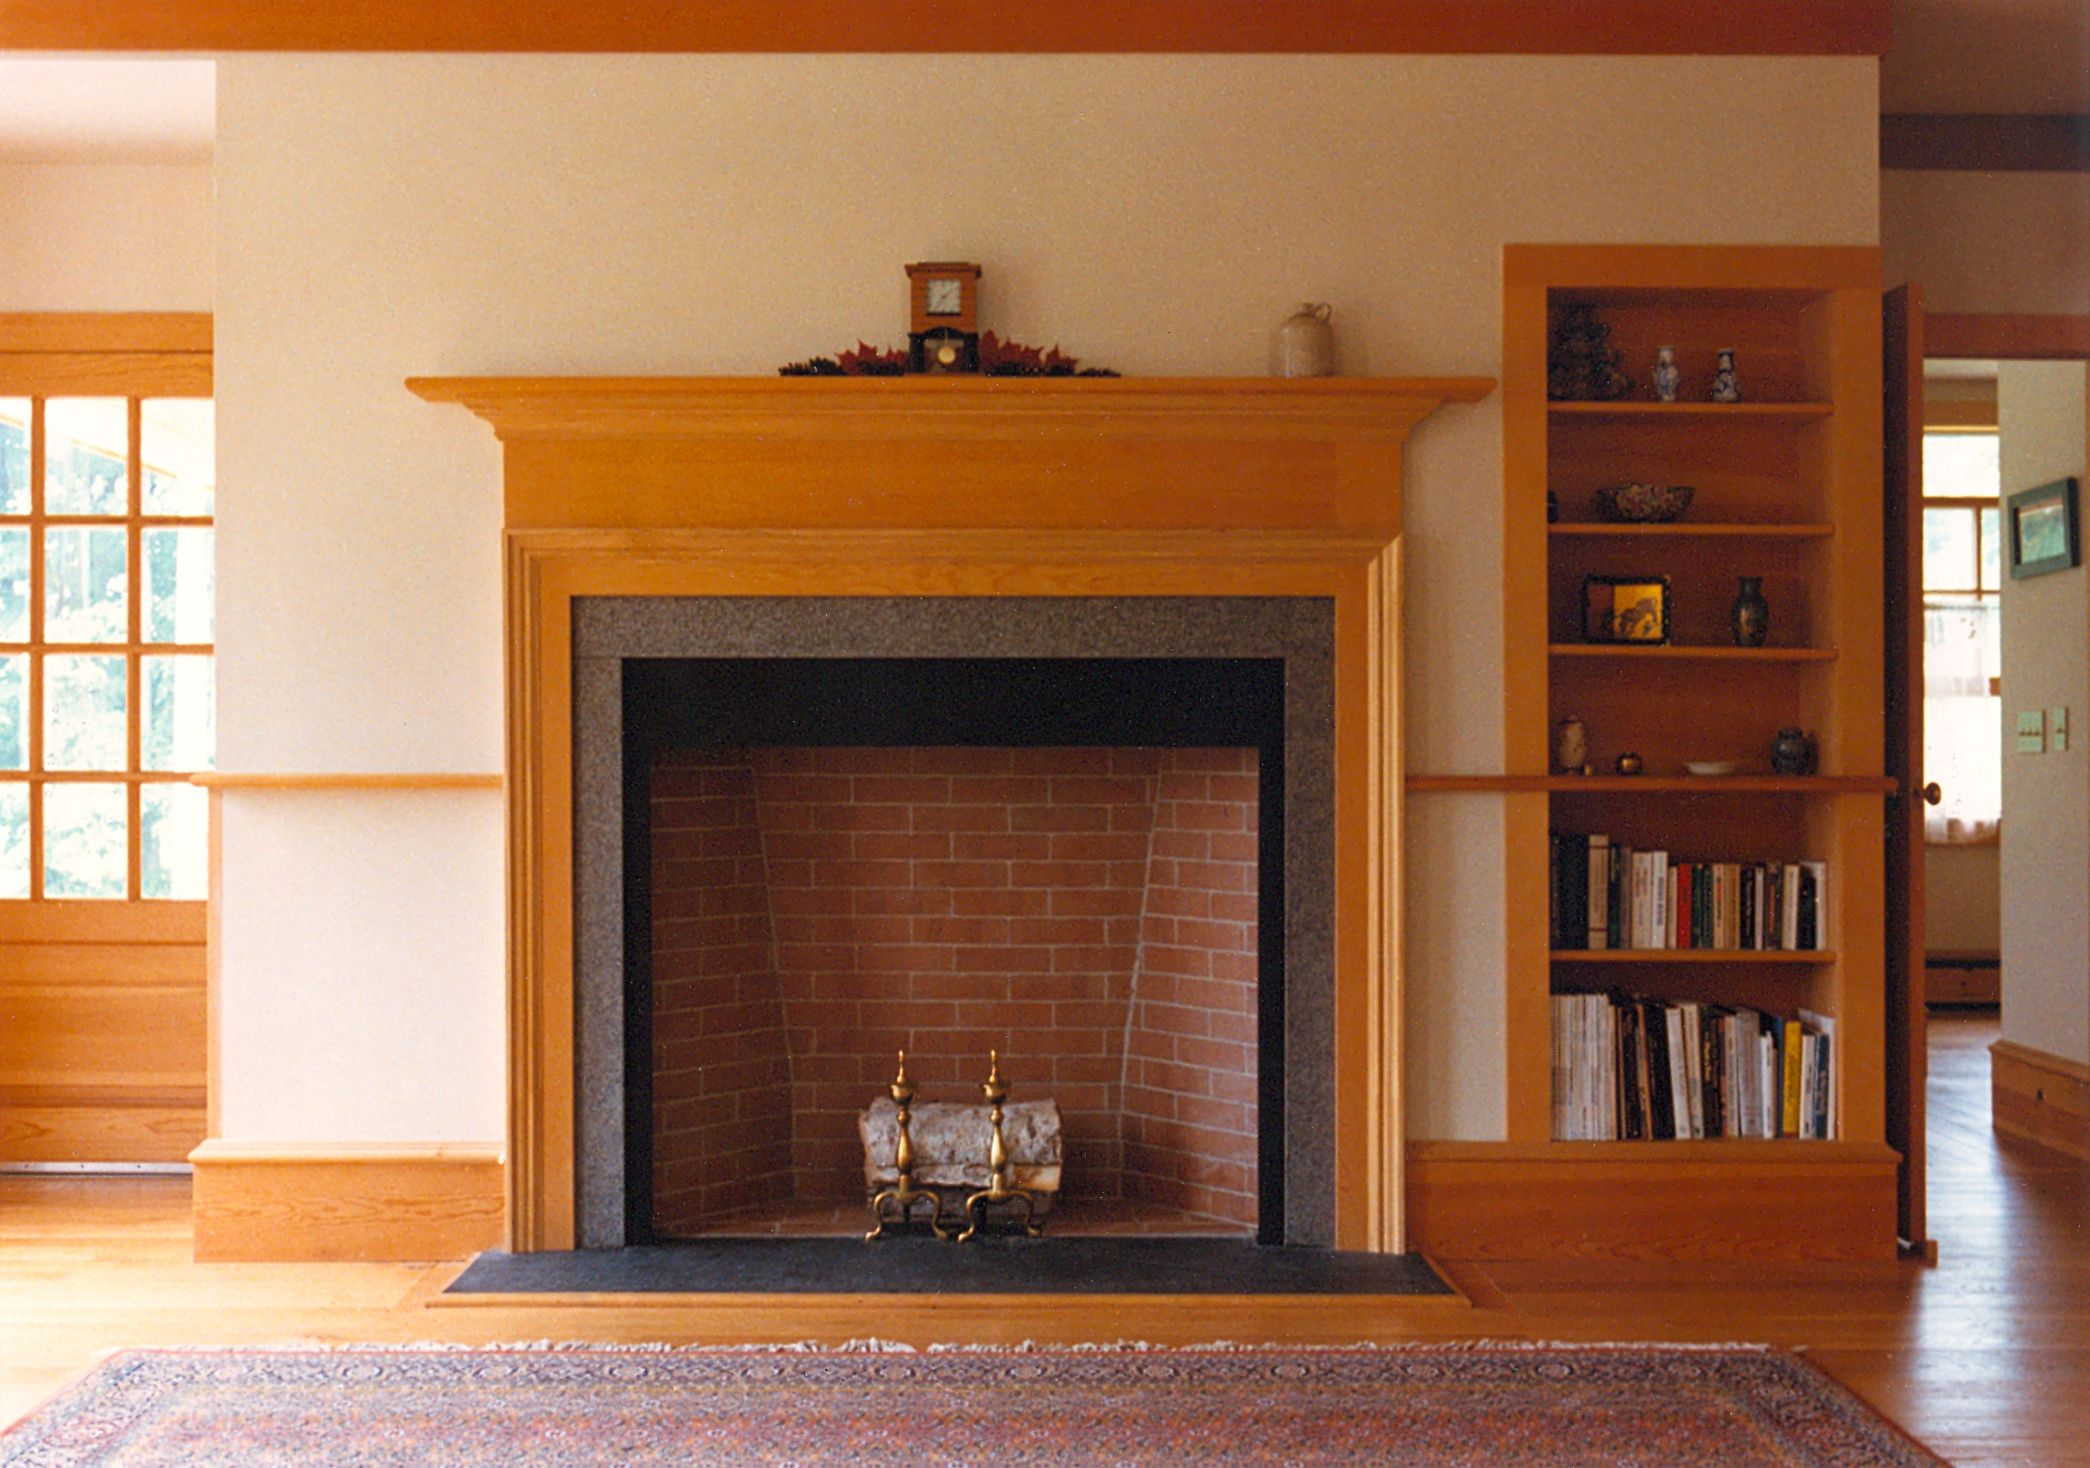 Rumford Fireplace Perfect The Heat Goes Into The Room